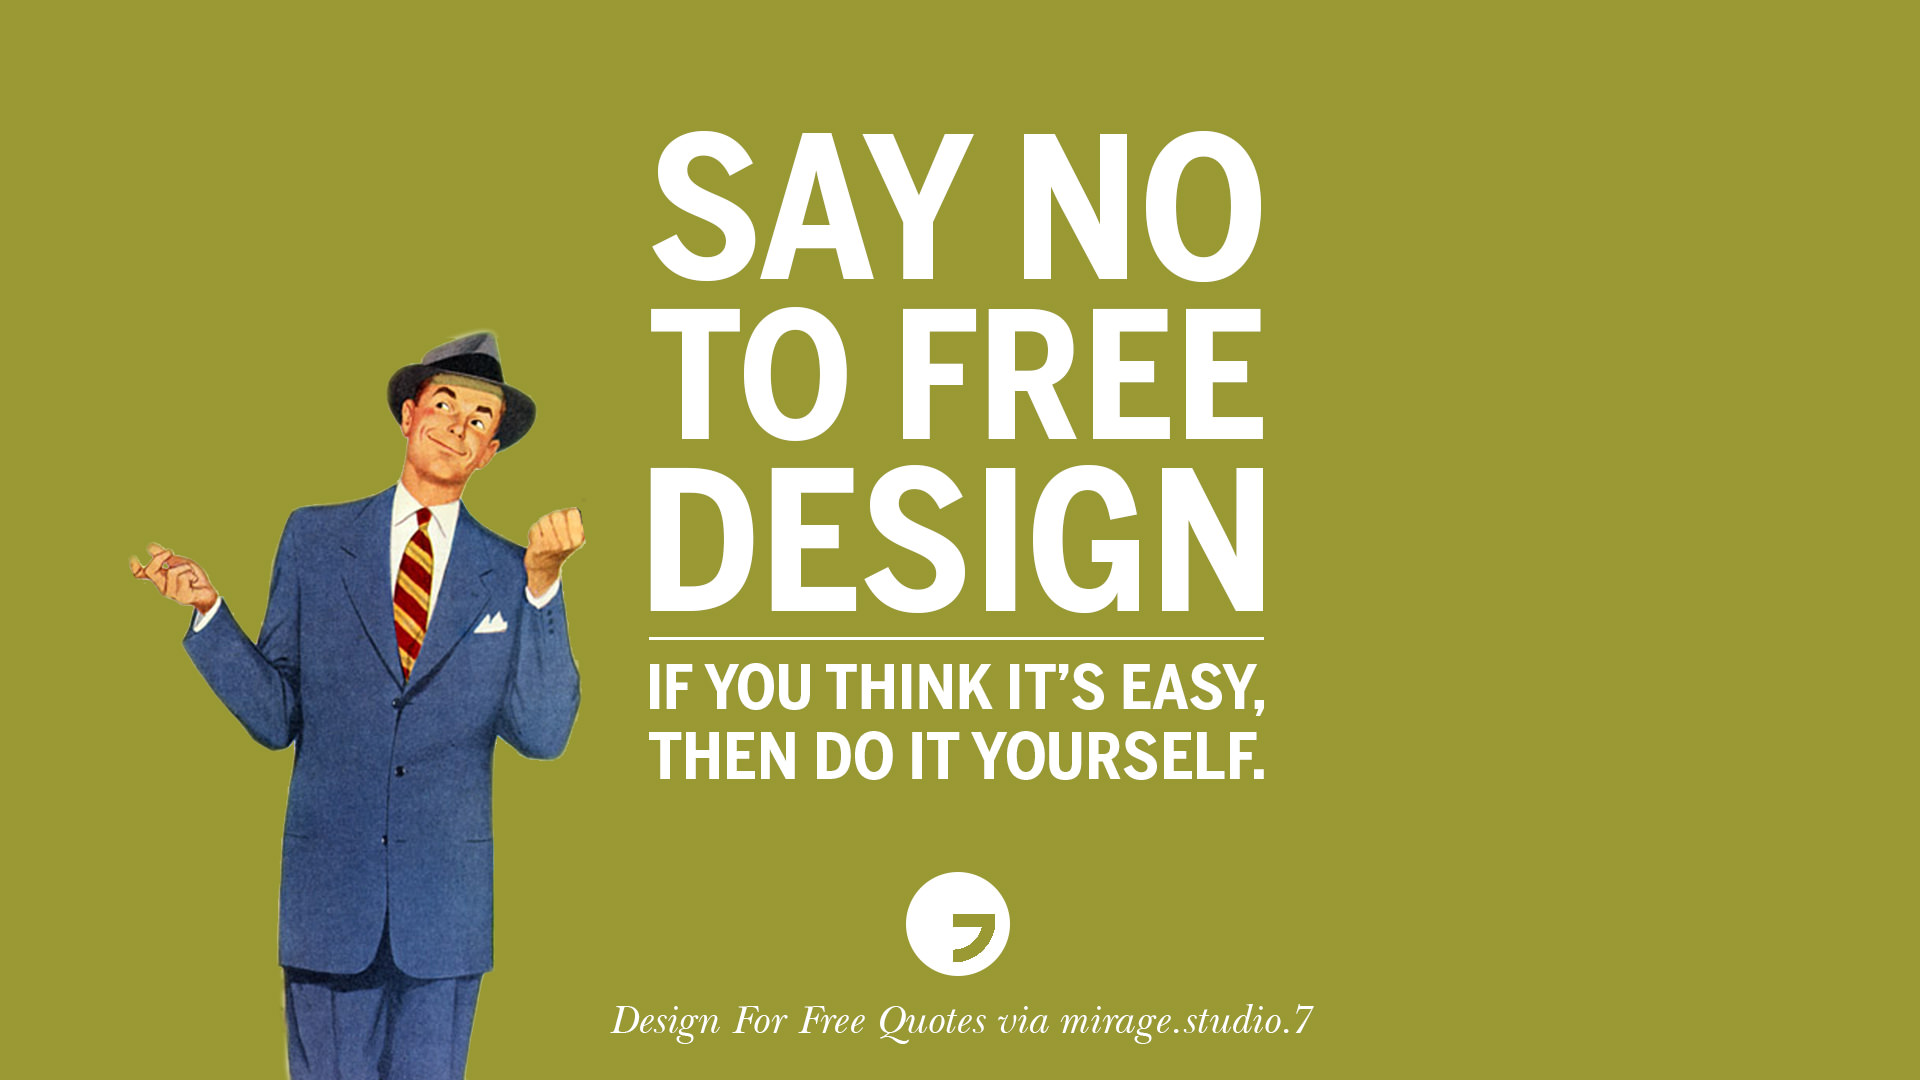 10 Sarcastic Design For Free Quotes For Interior